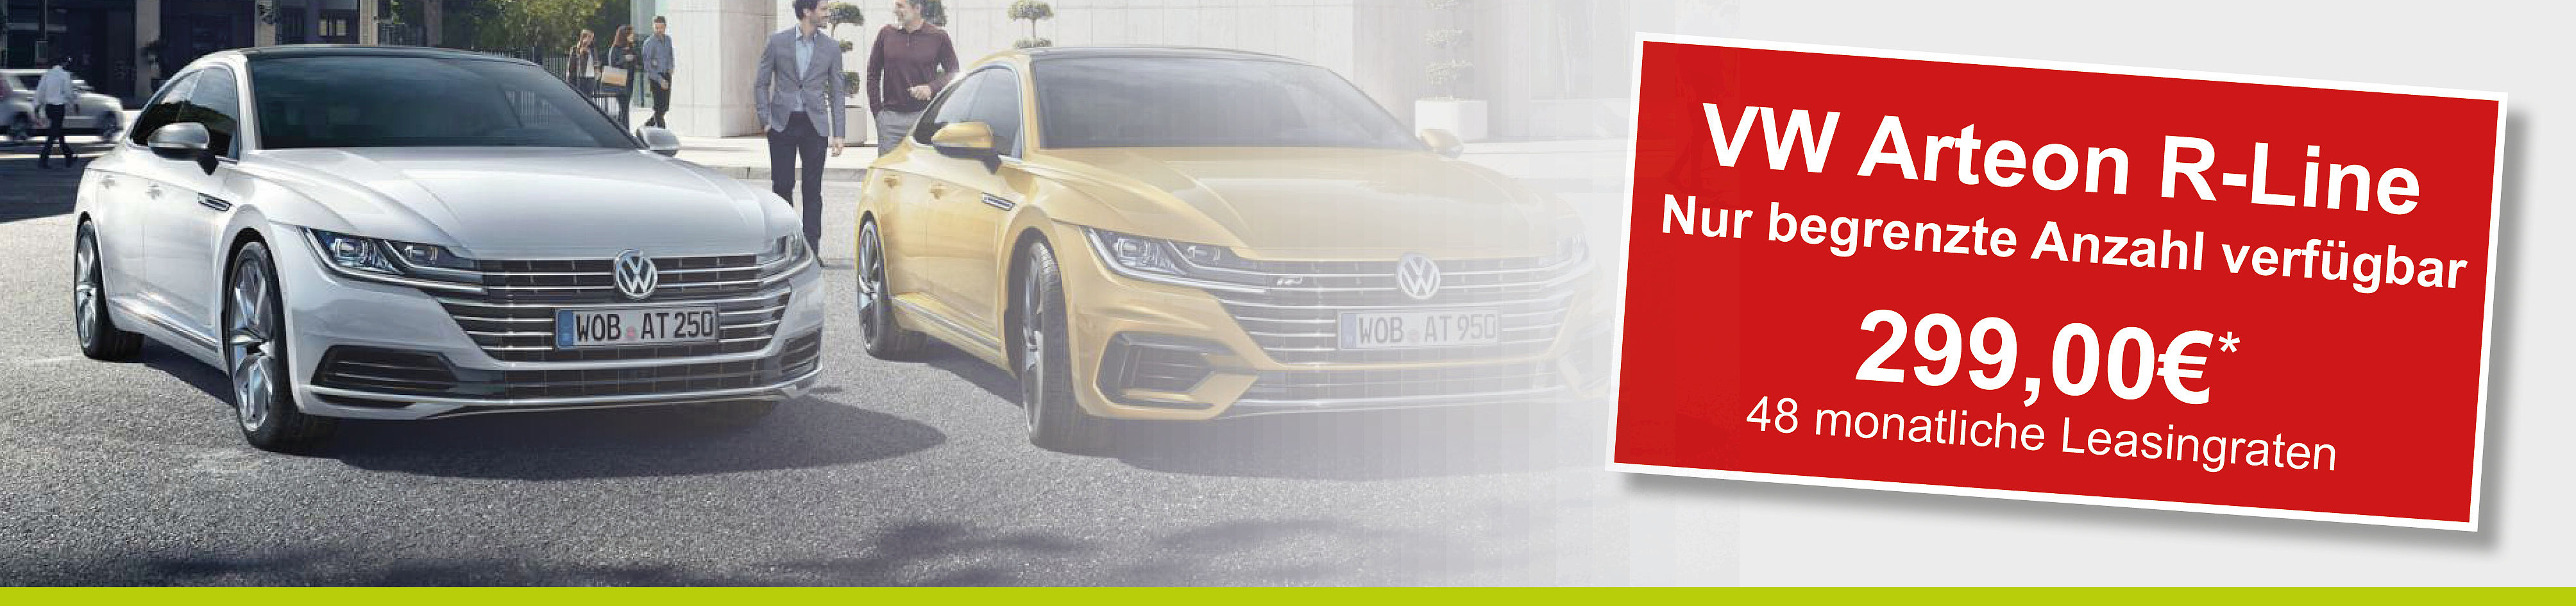 Arteon Aktion September - PRIVAT